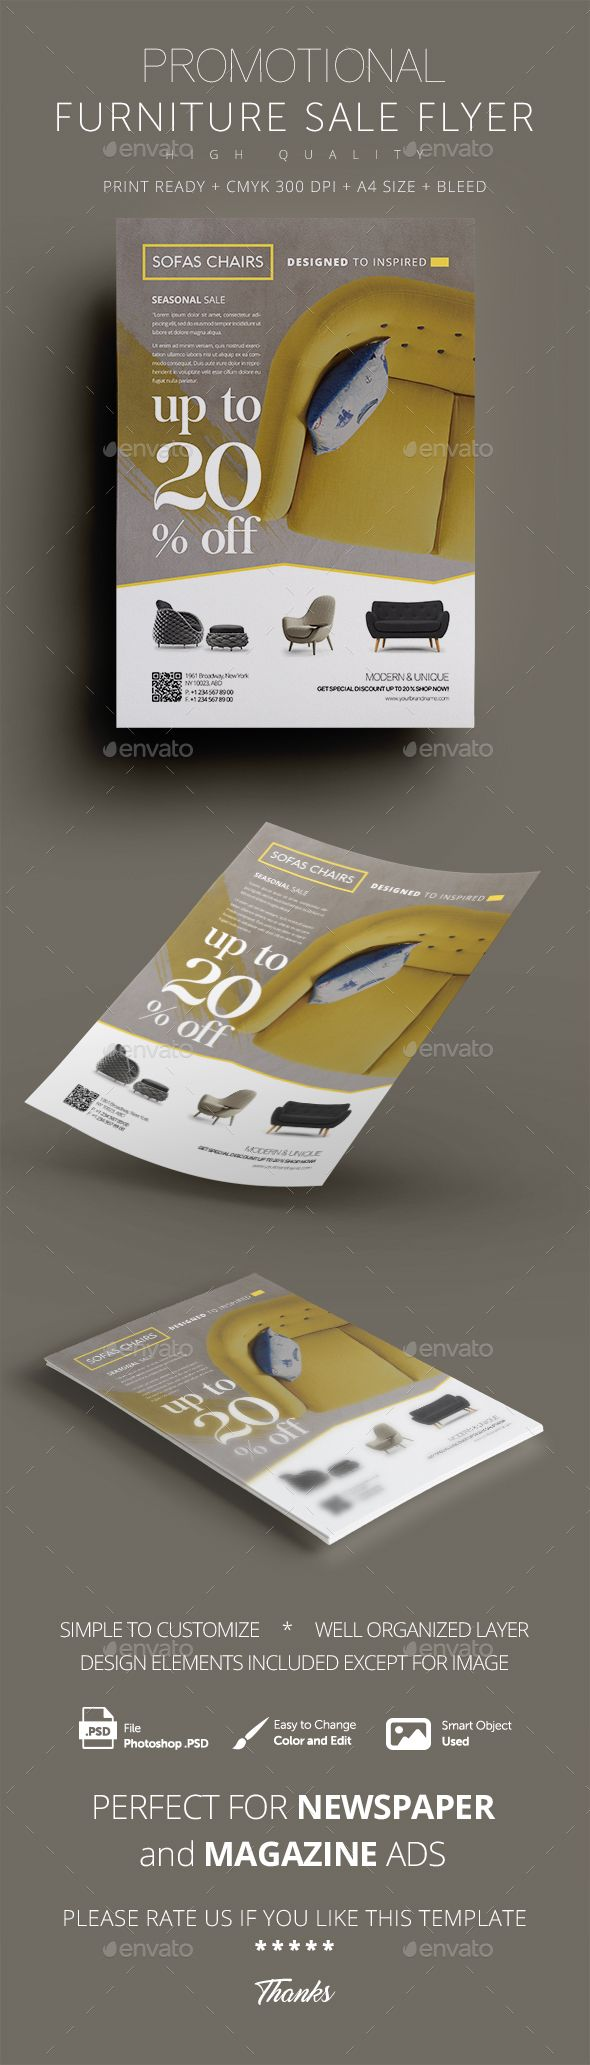 best 25 flyer design templates ideas on pinterest flyer design